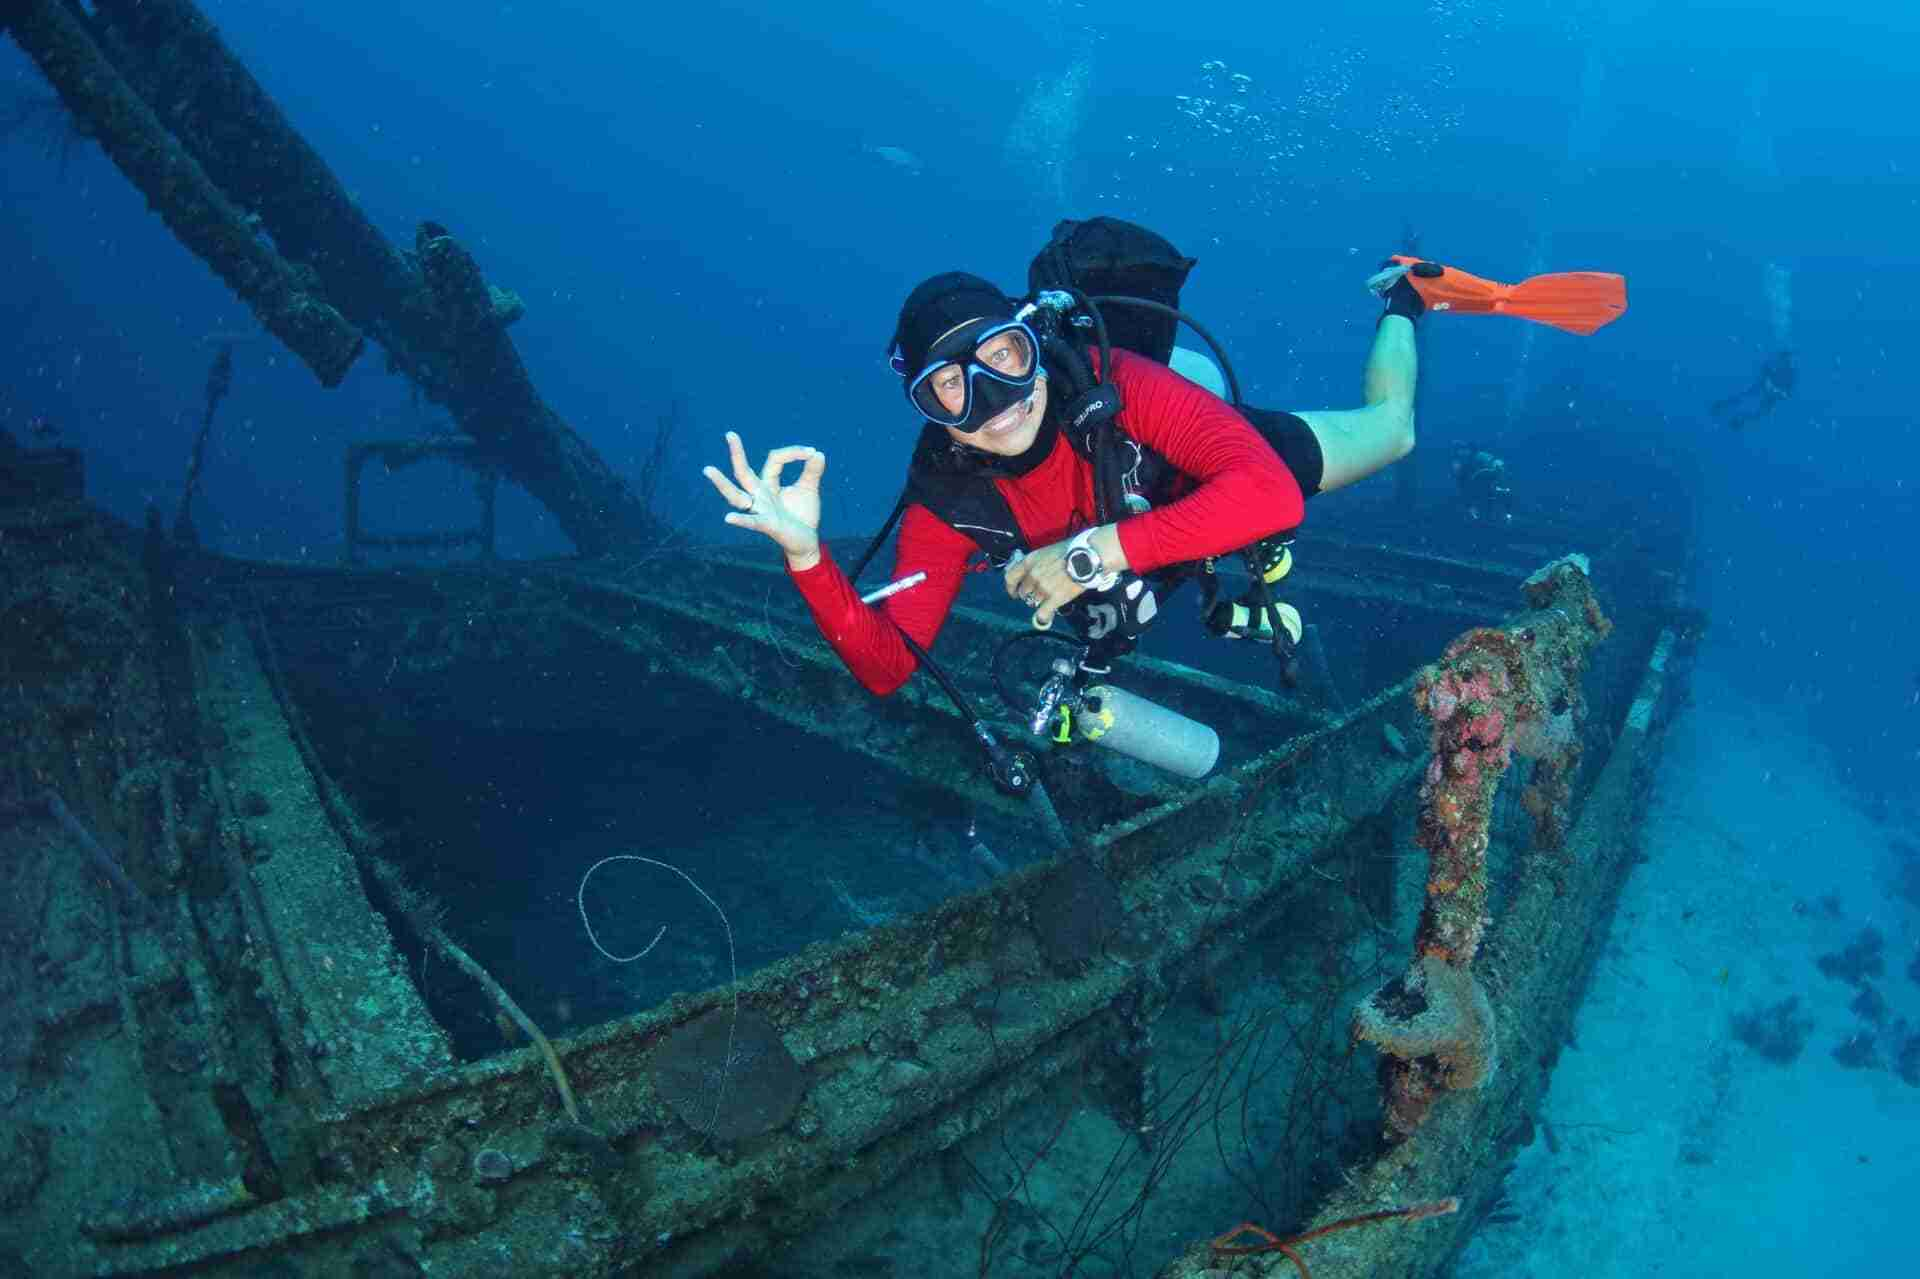 Top Diving News Stories of 2020 from Curacao | Dive News Curaçao